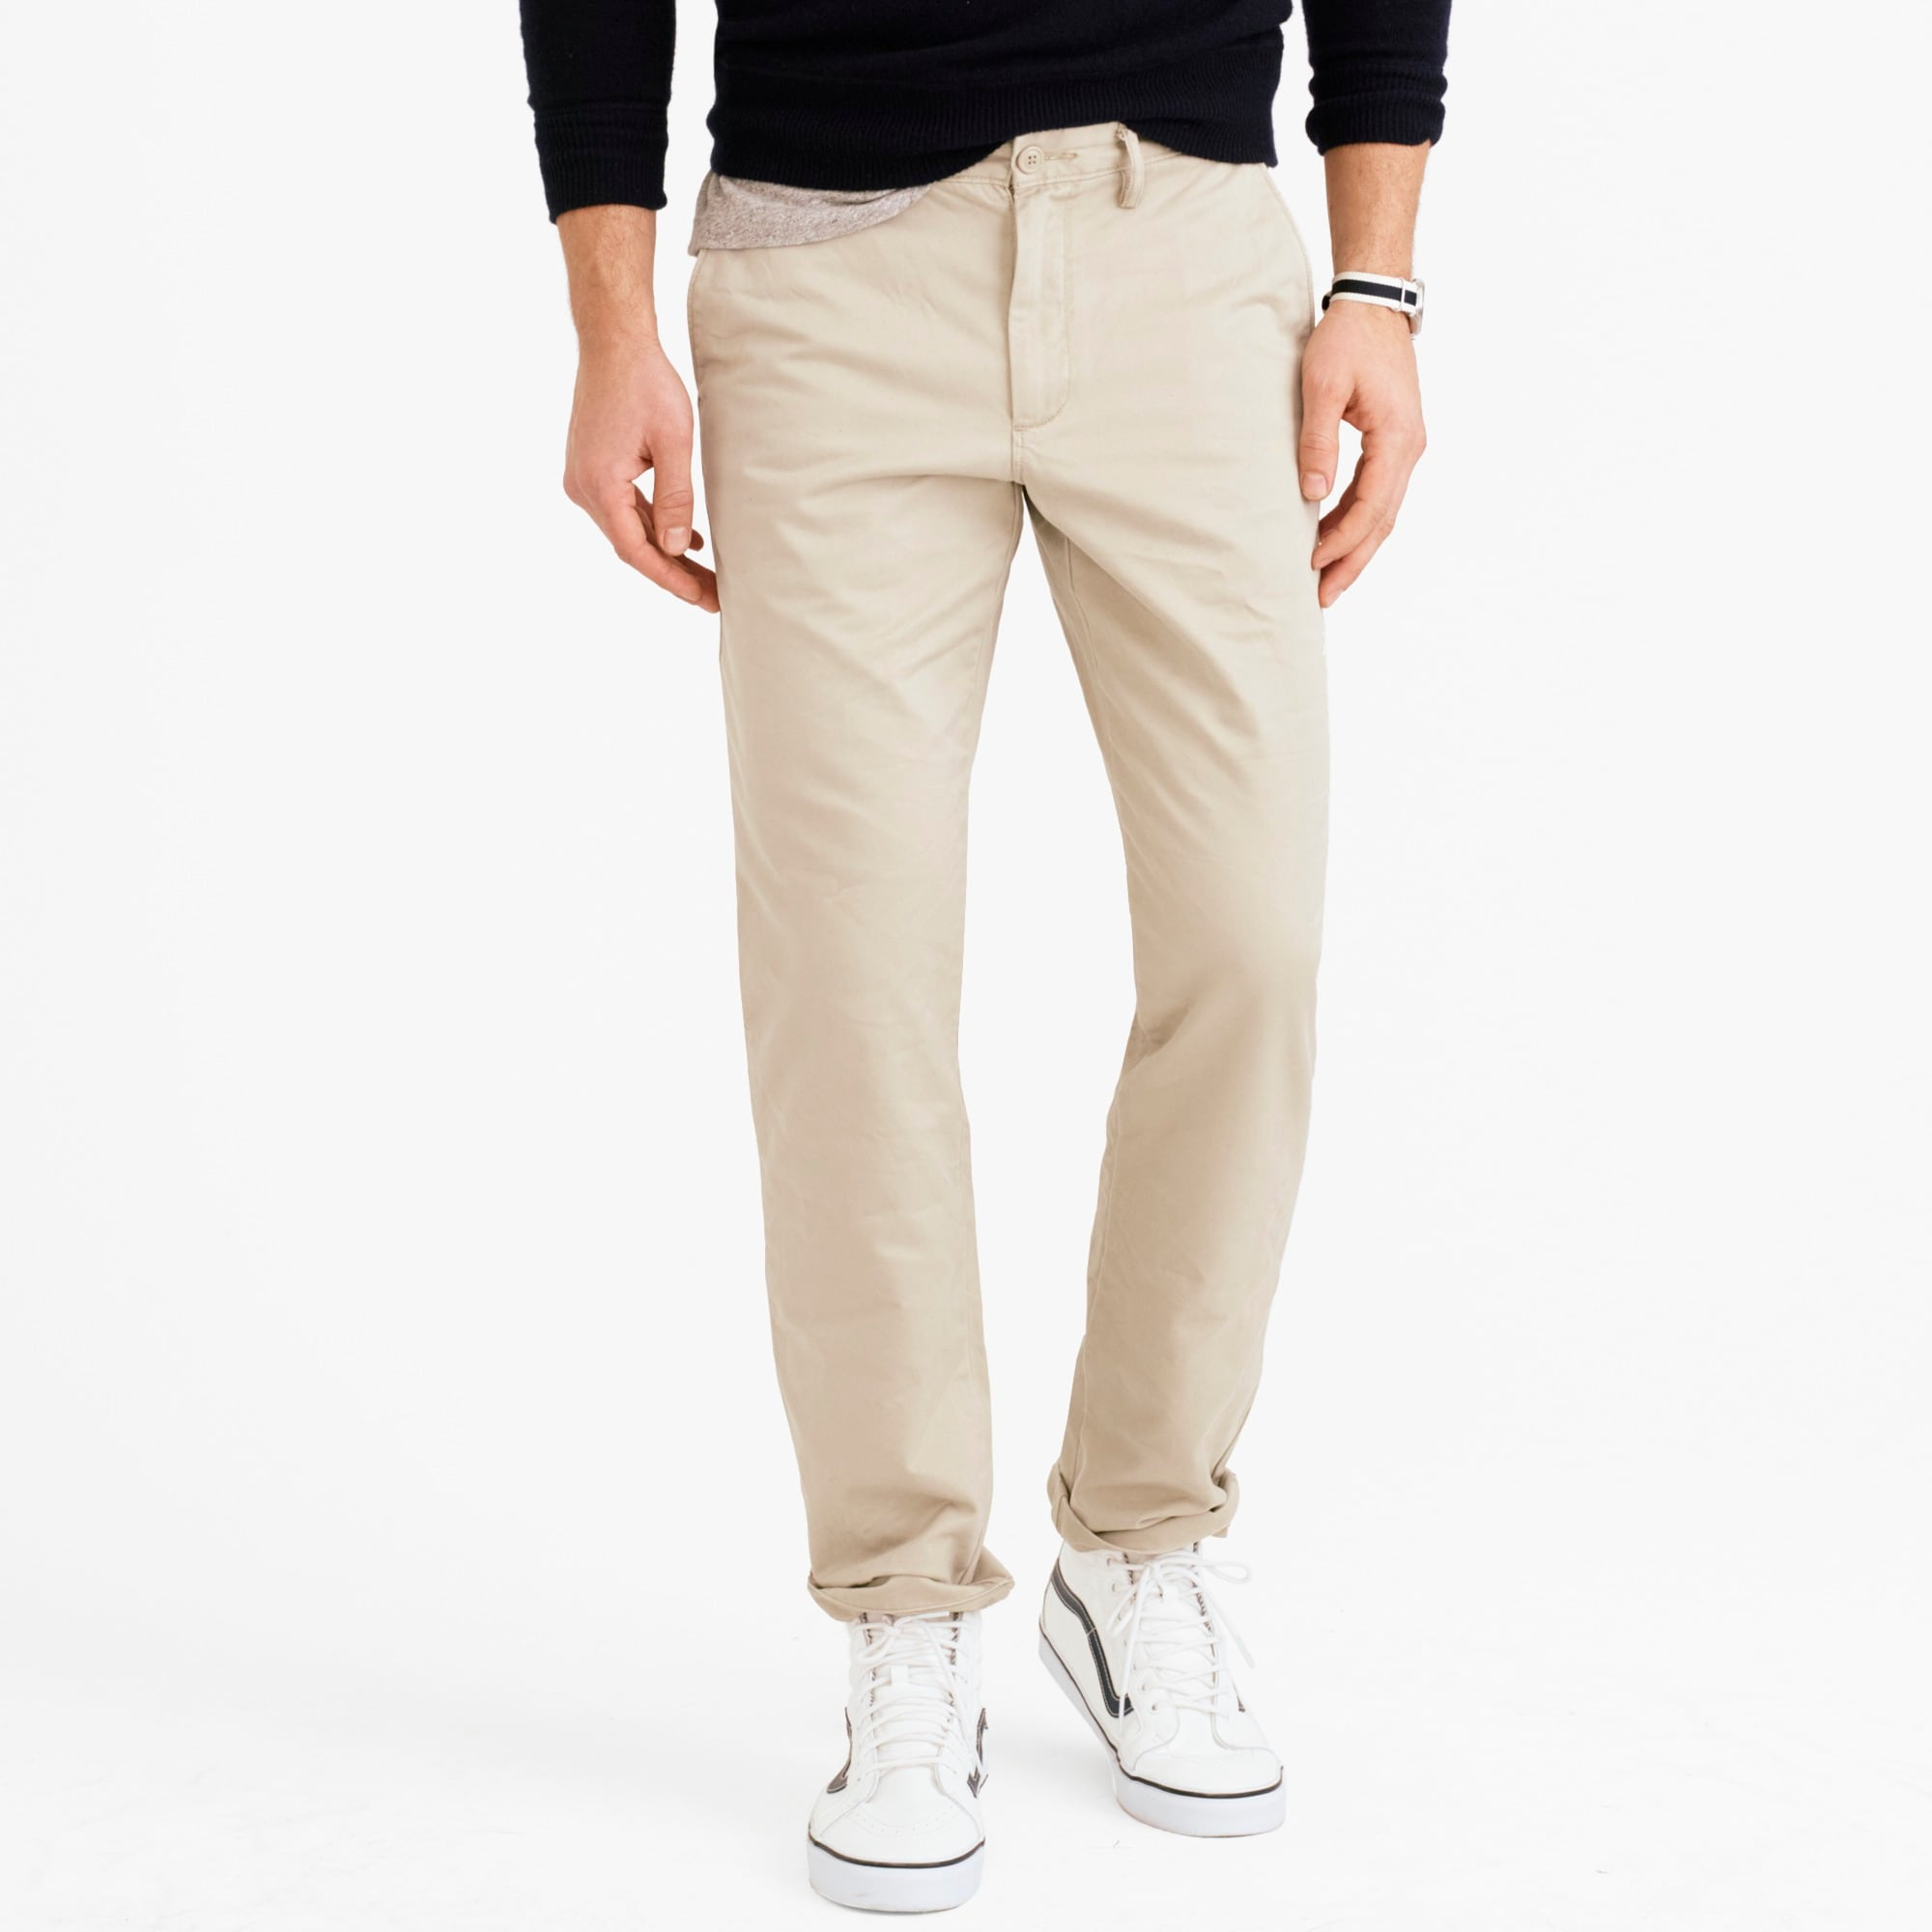 770 Straight-fit pant in broken-in chino men new arrivals c